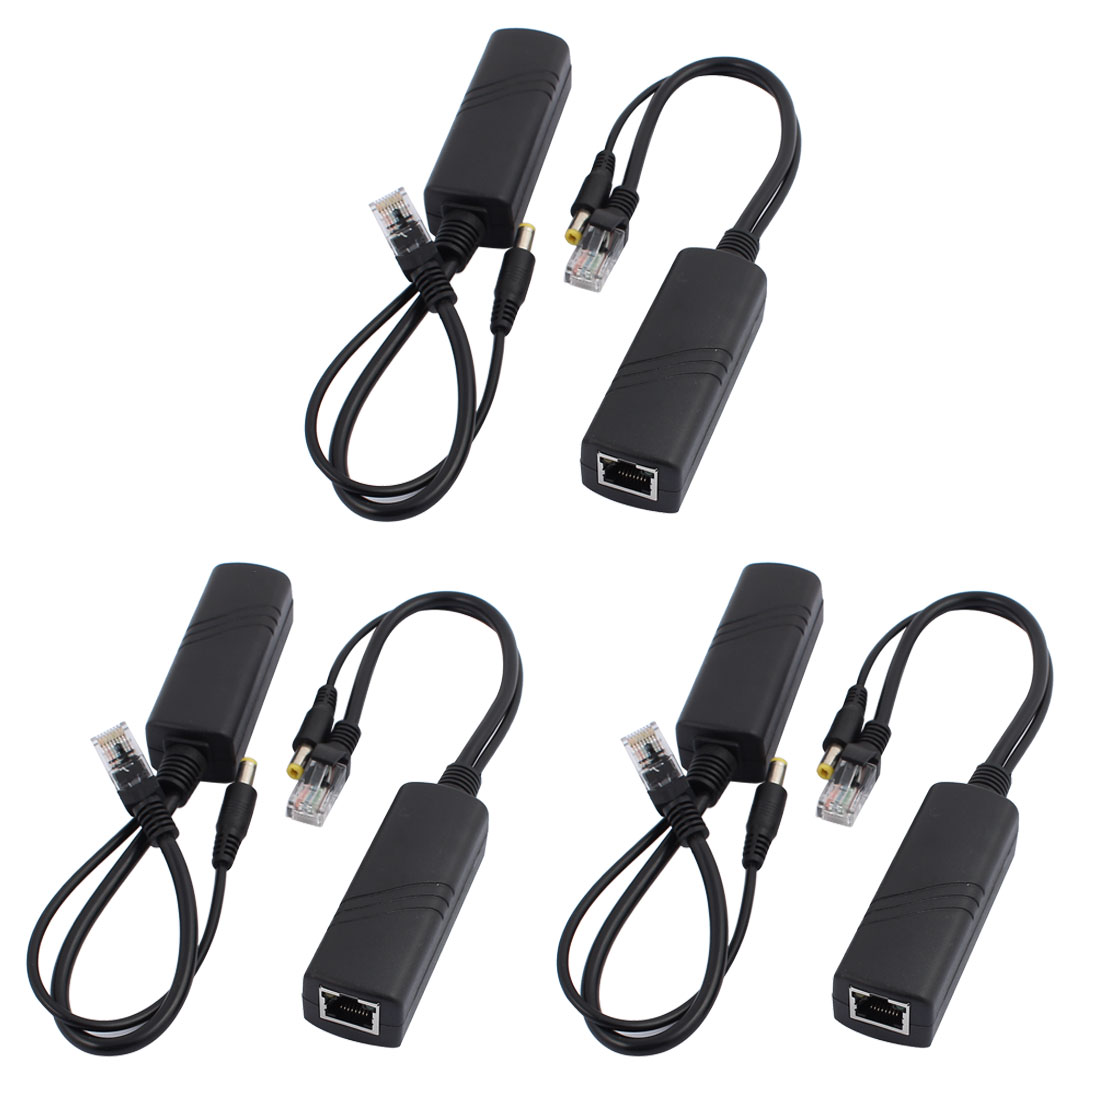 IP Camera RJ45 POE Power Over Ethernet Adapter Injector + Splitter Cable 6PCS